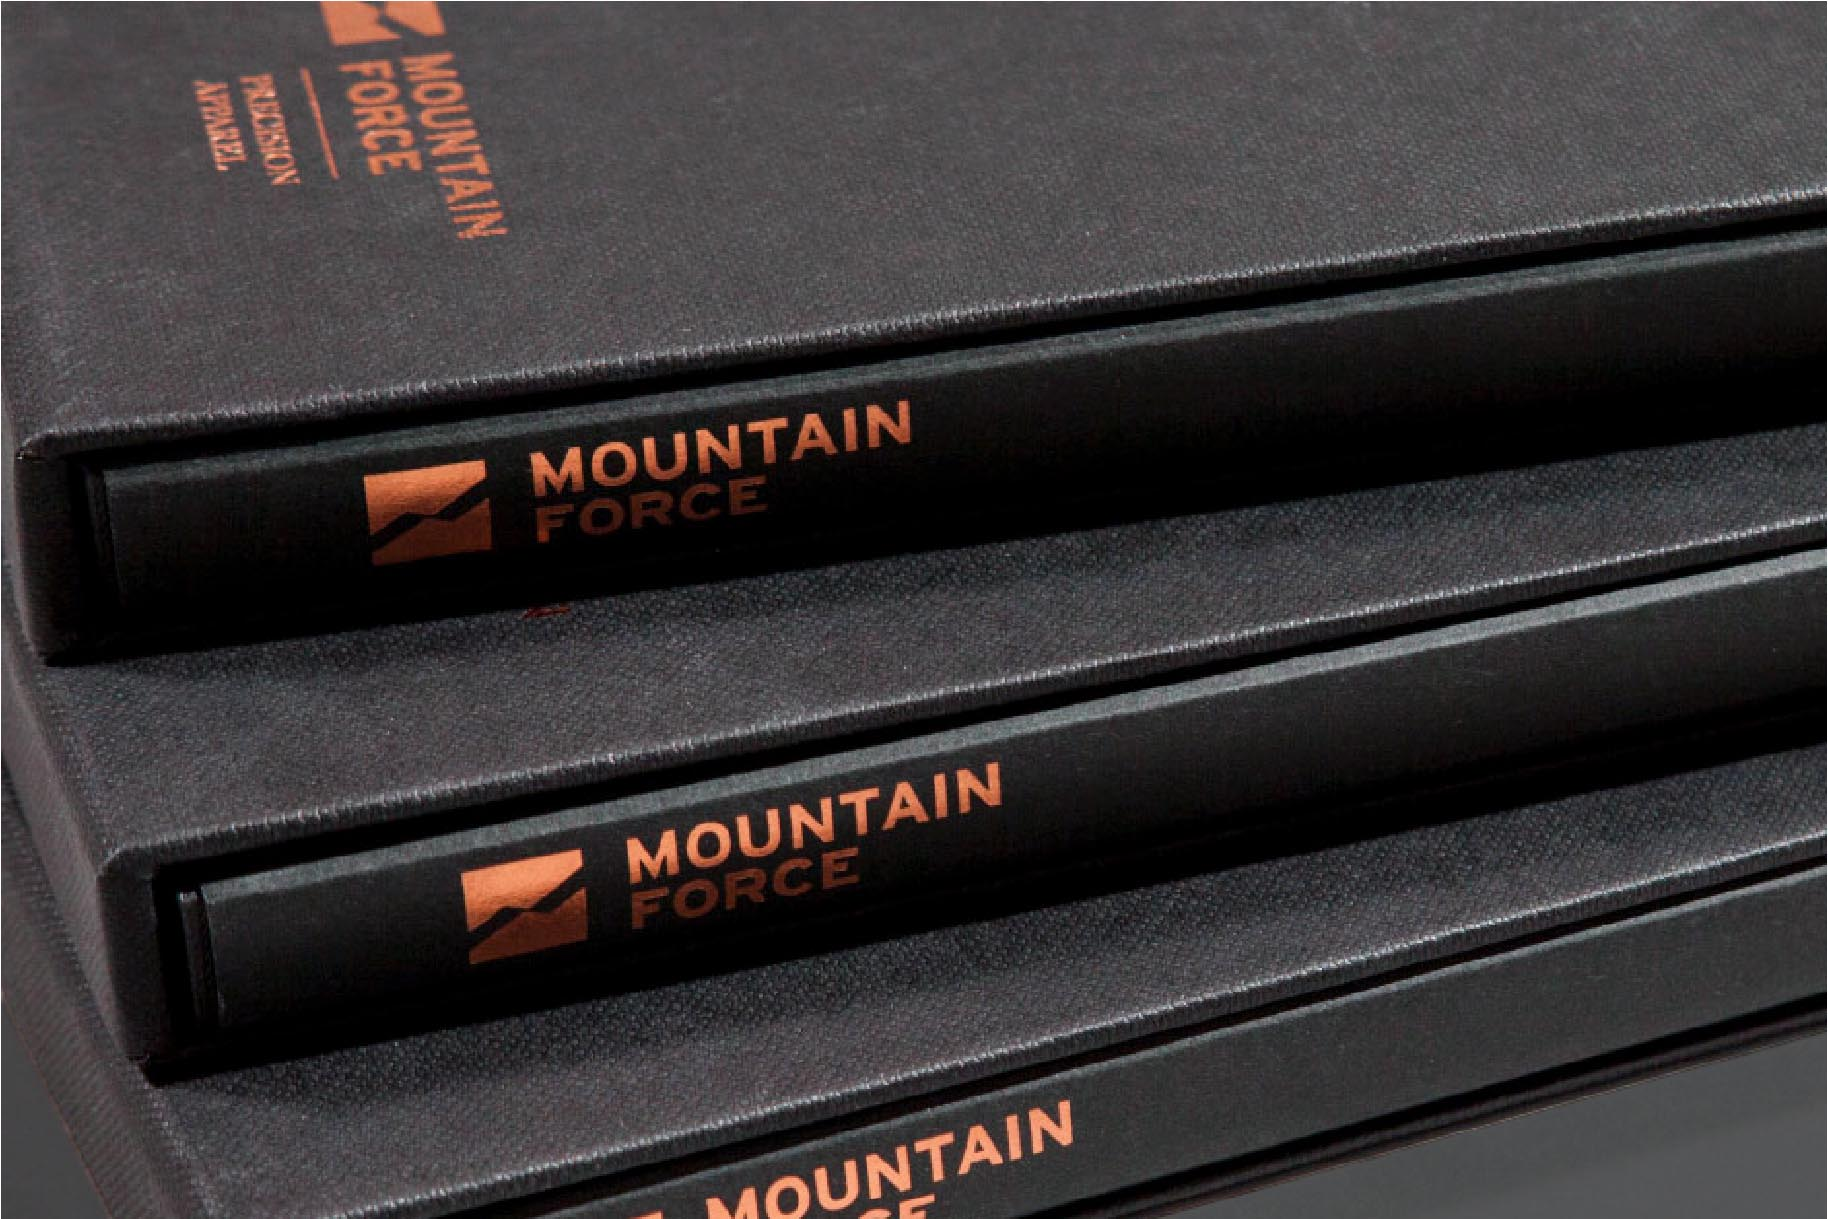 Mountain Force brand vision